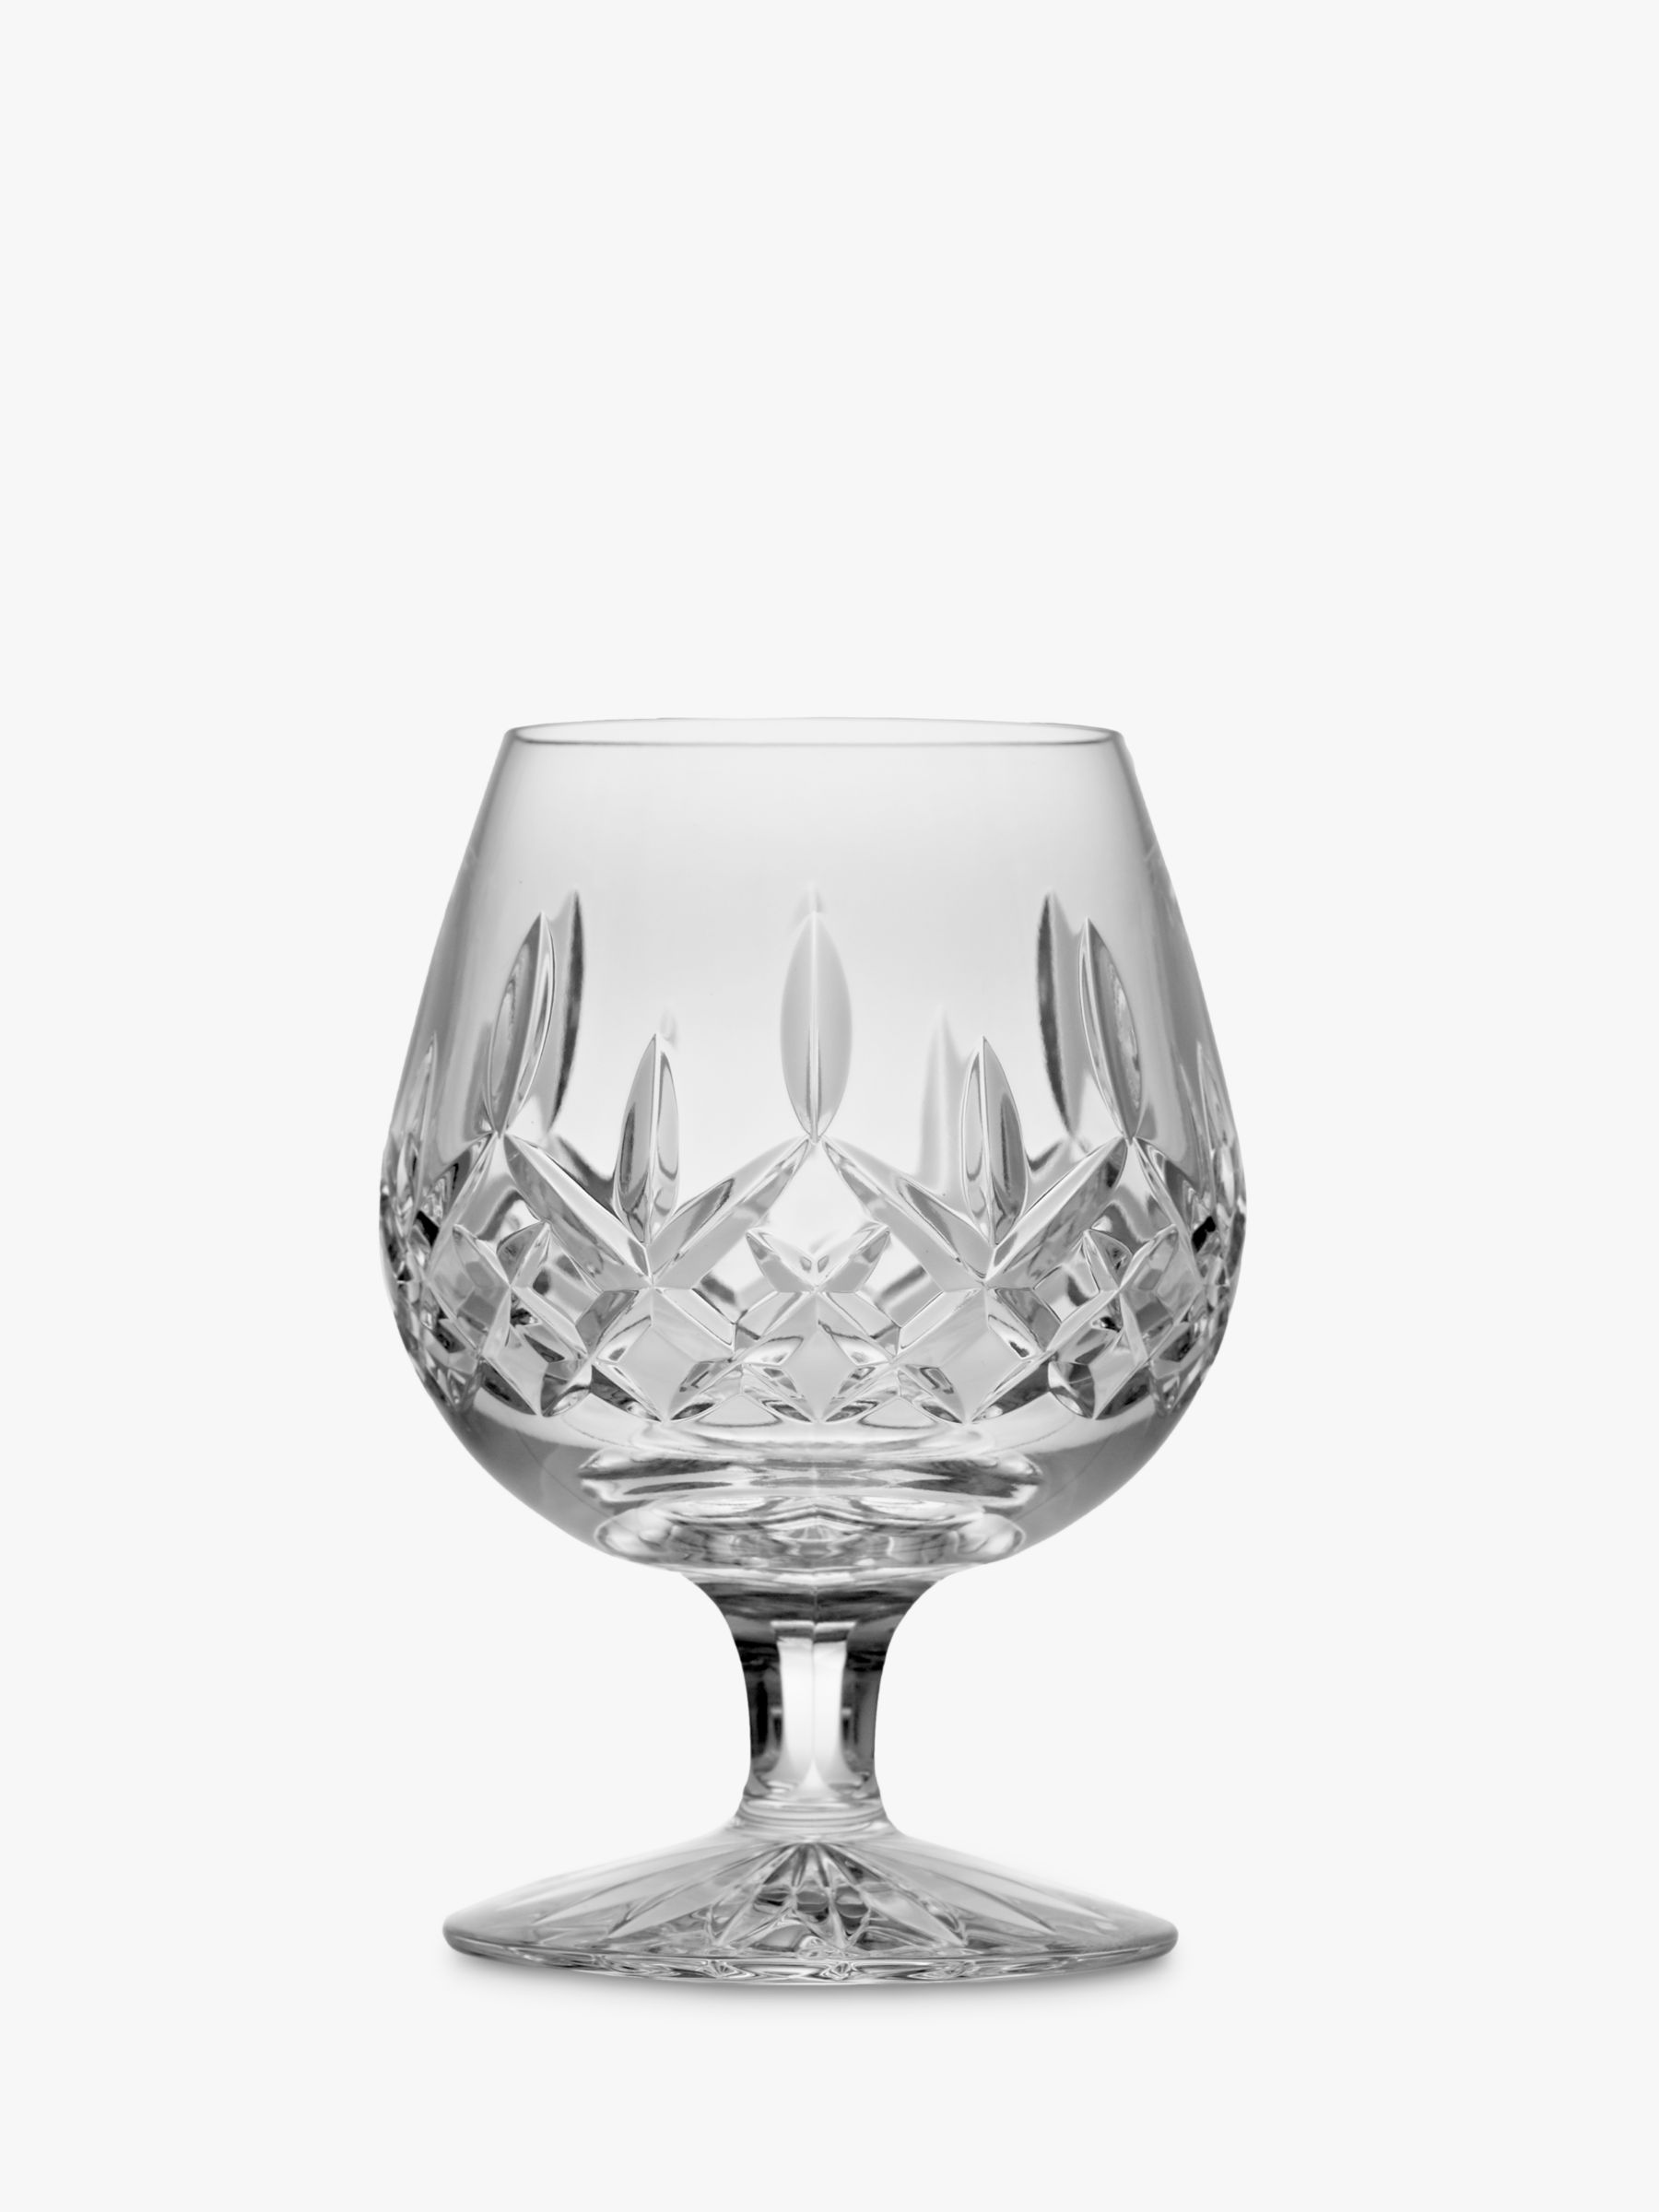 Best cut glassware prices in kitchen online - Waterford cognac glasses ...